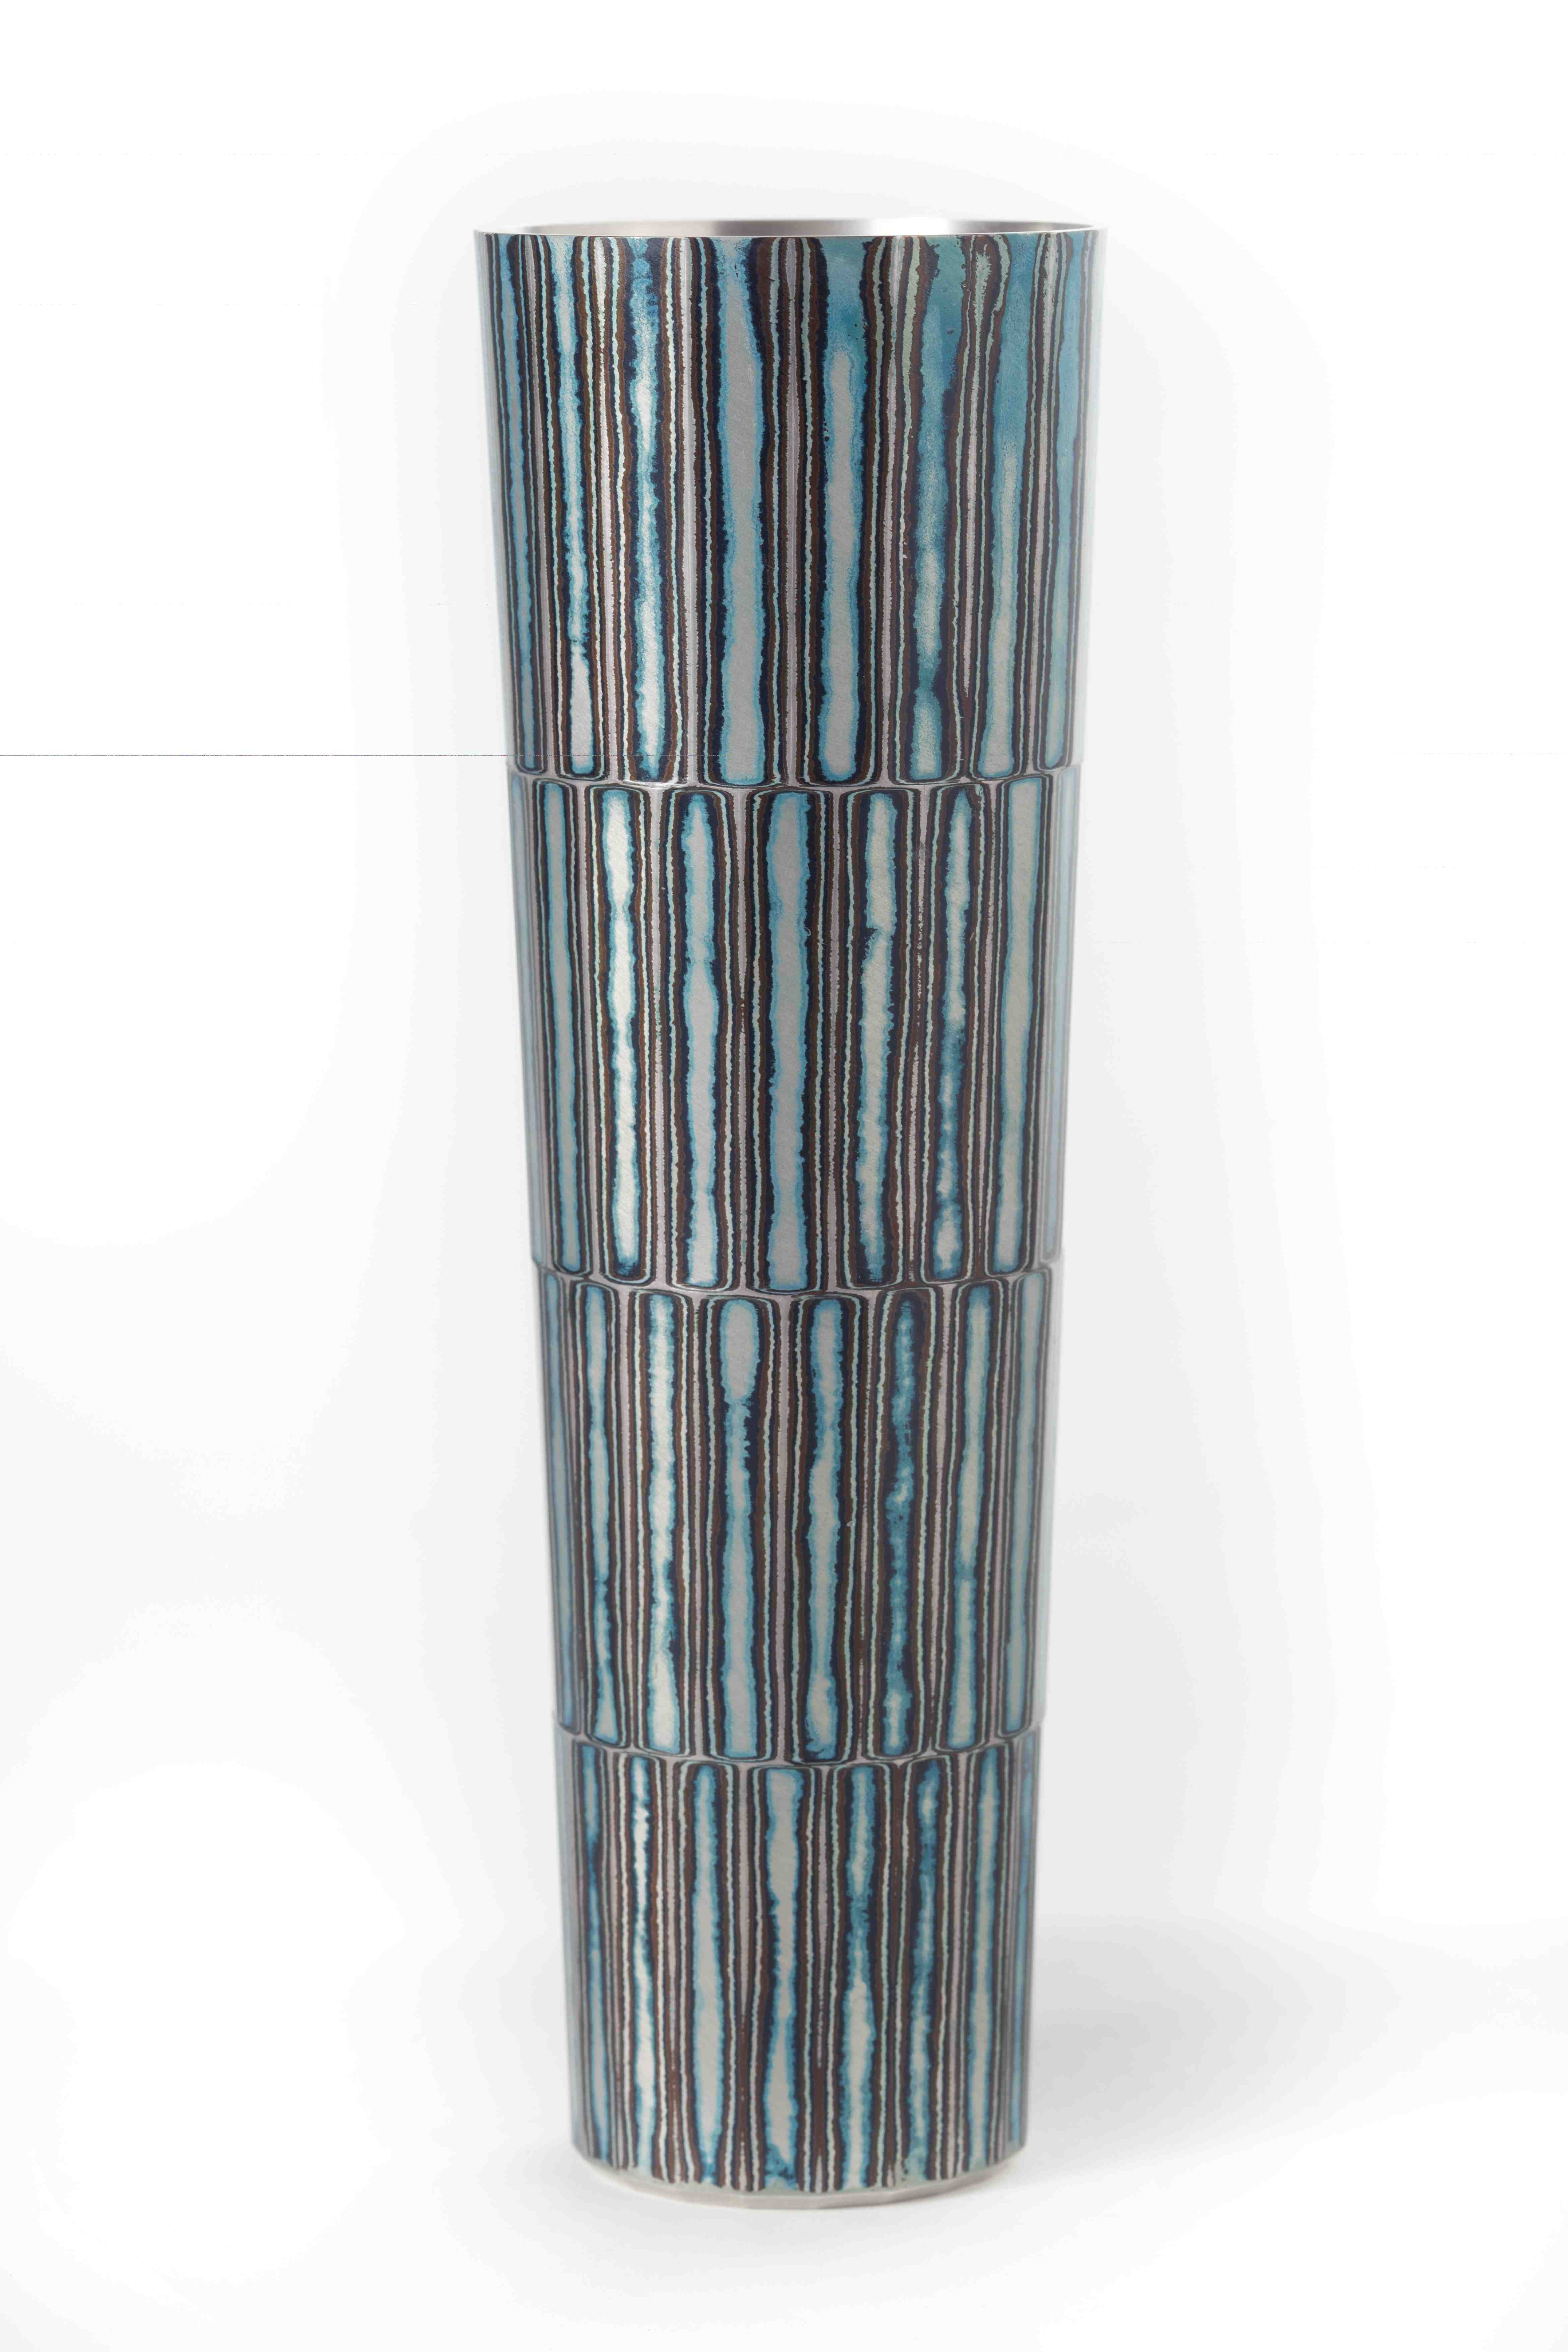 Fabricated Mokume Gane Vase made from 7 layers of silver copper and gilding metal Ht 15cm Dia 4.8cm